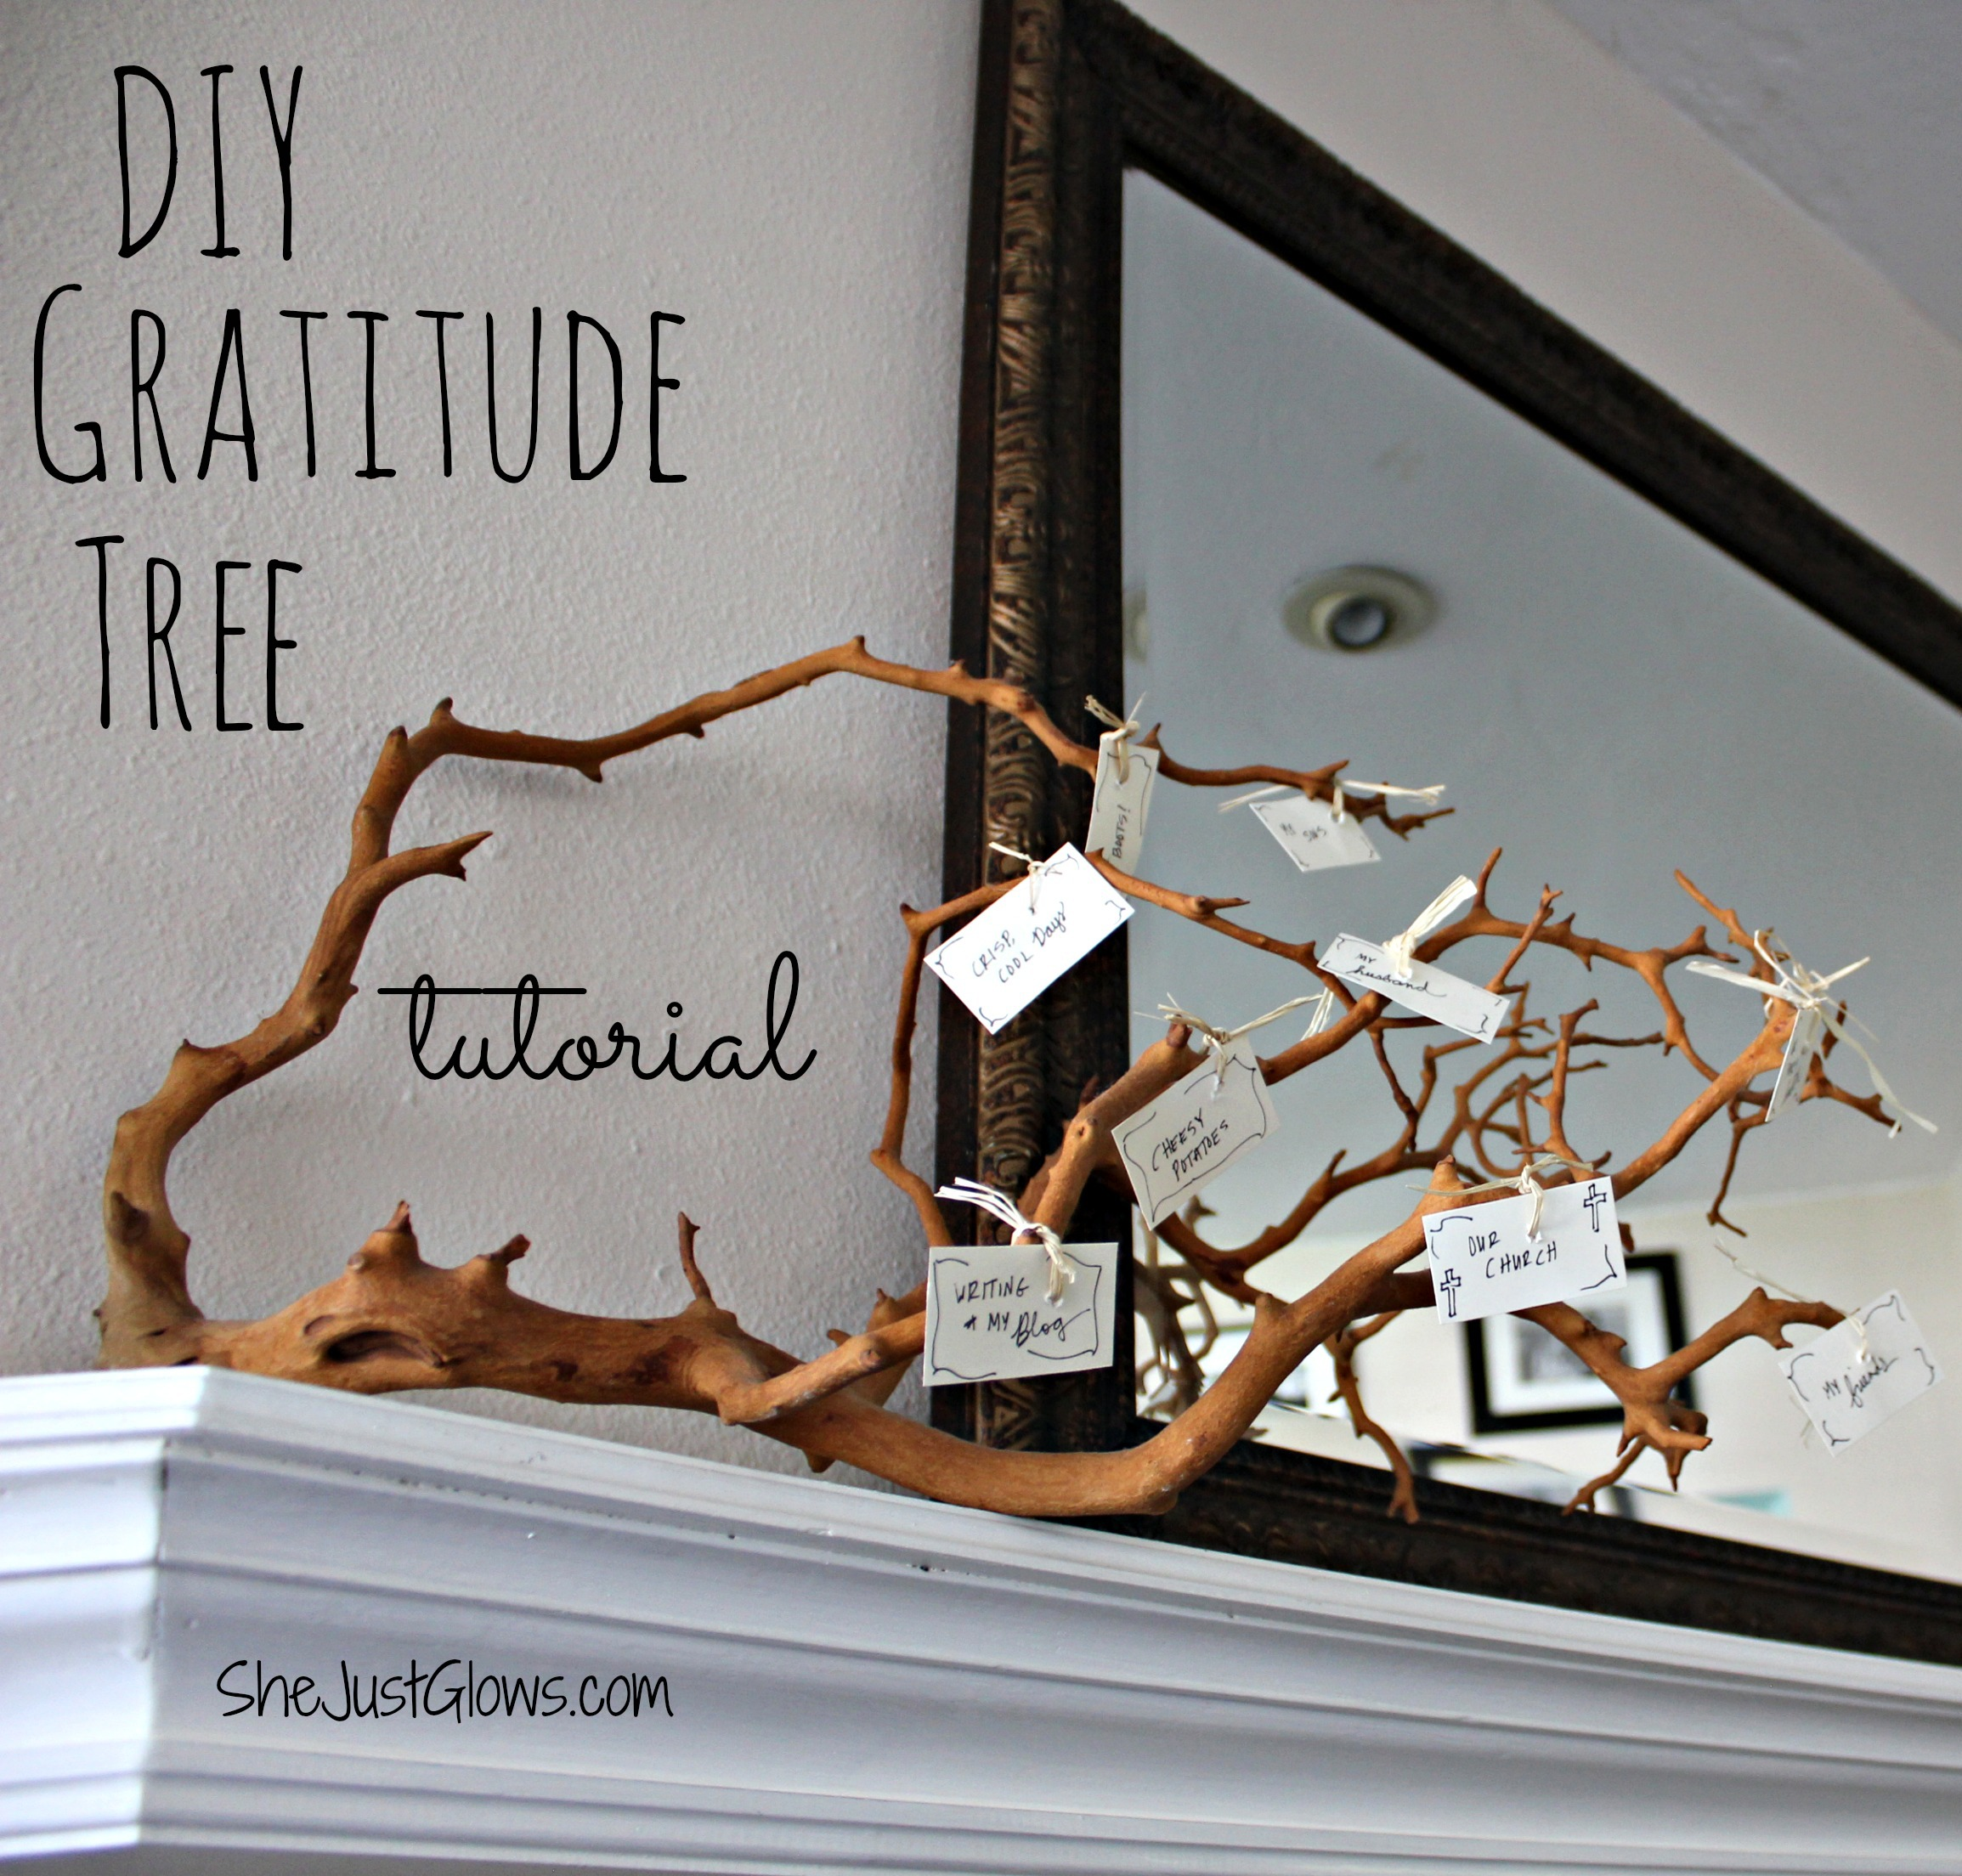 DIY Gratitude Tree Tutorial SheJustGlows.com